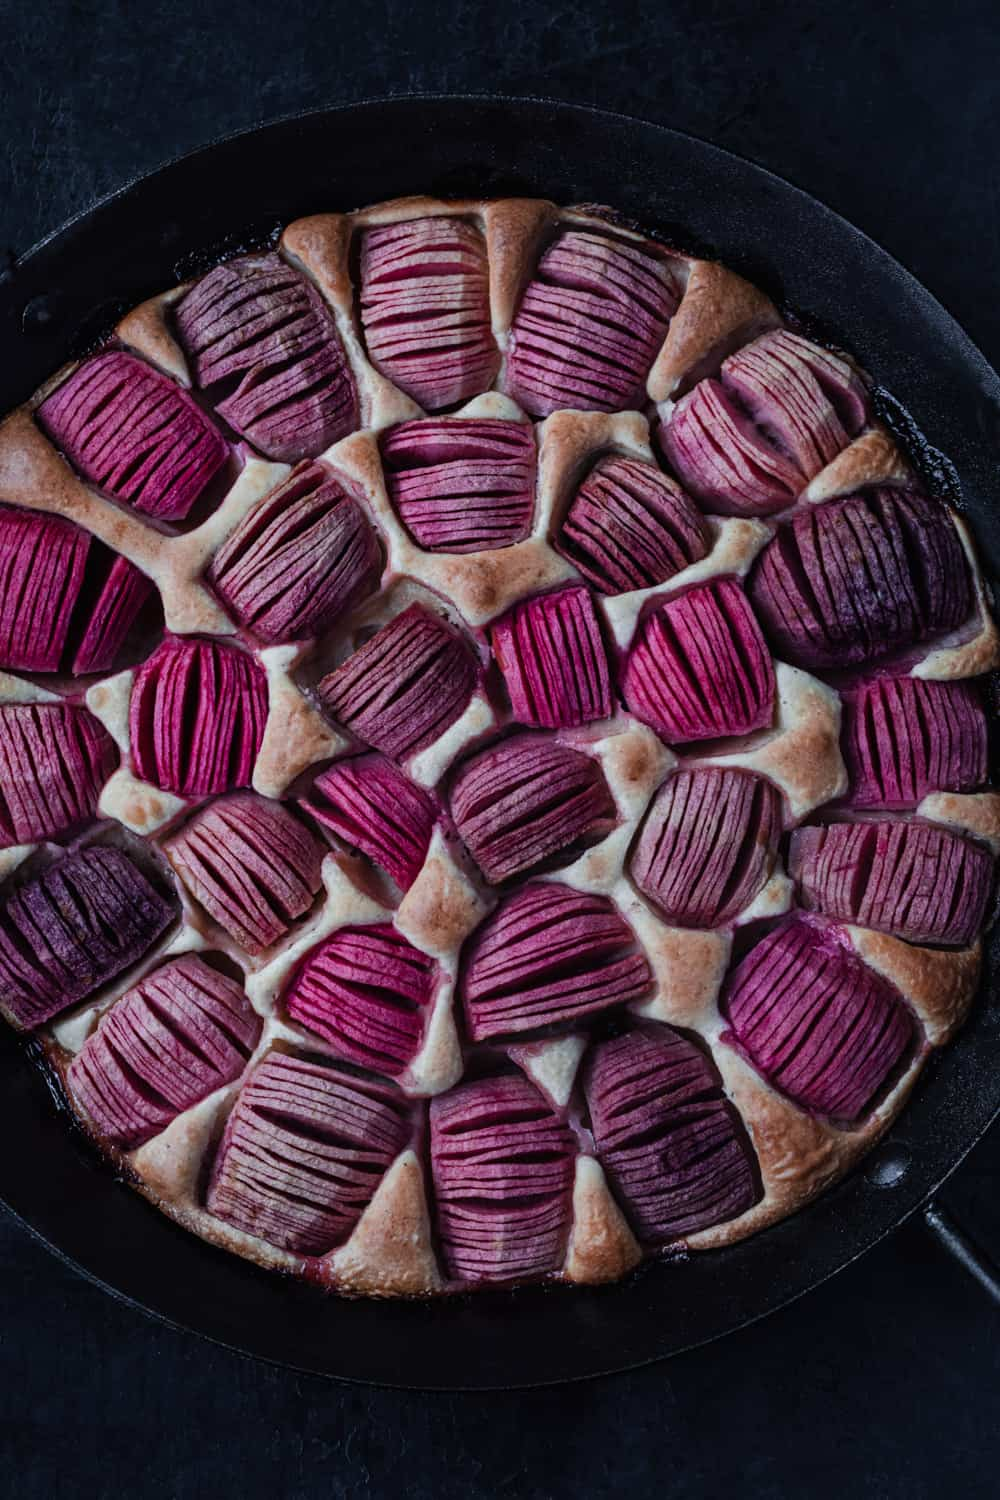 Pink apple cake, in a black cast iron pan, overhead shot on a black background. The color of the pink apples is a vibrantly hot pink and they really pop on the cake!